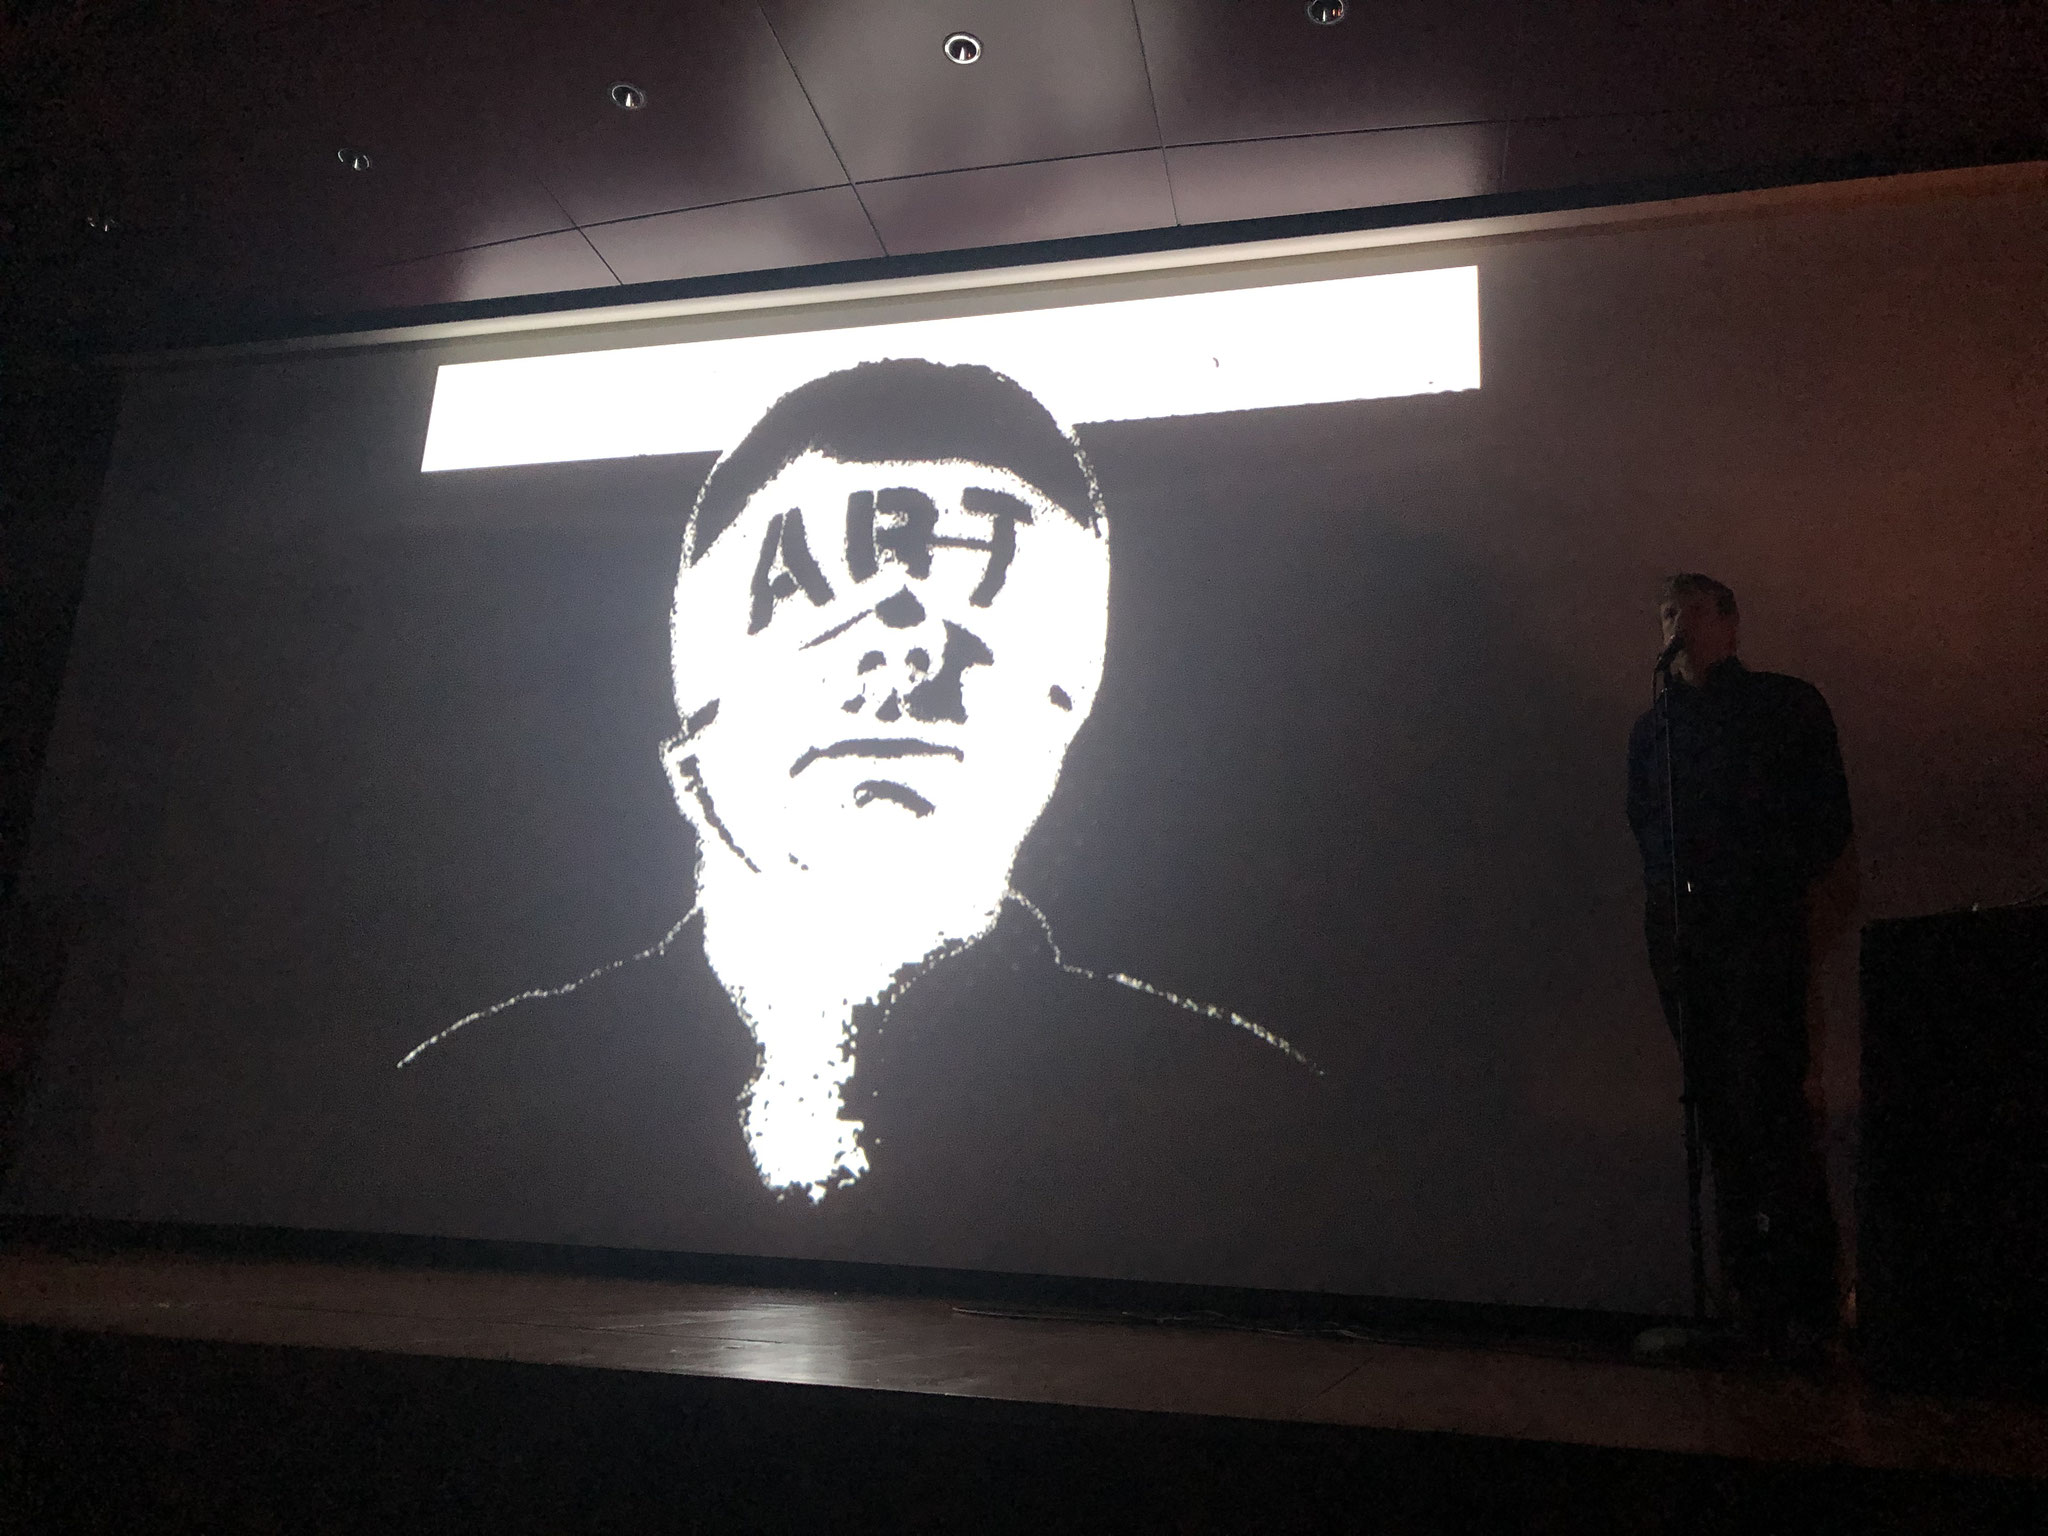 Projection during the live concert by Club Moral on occasion of the homage to Guy Schraenen, Museum Reina Sofia, Madrid 2020